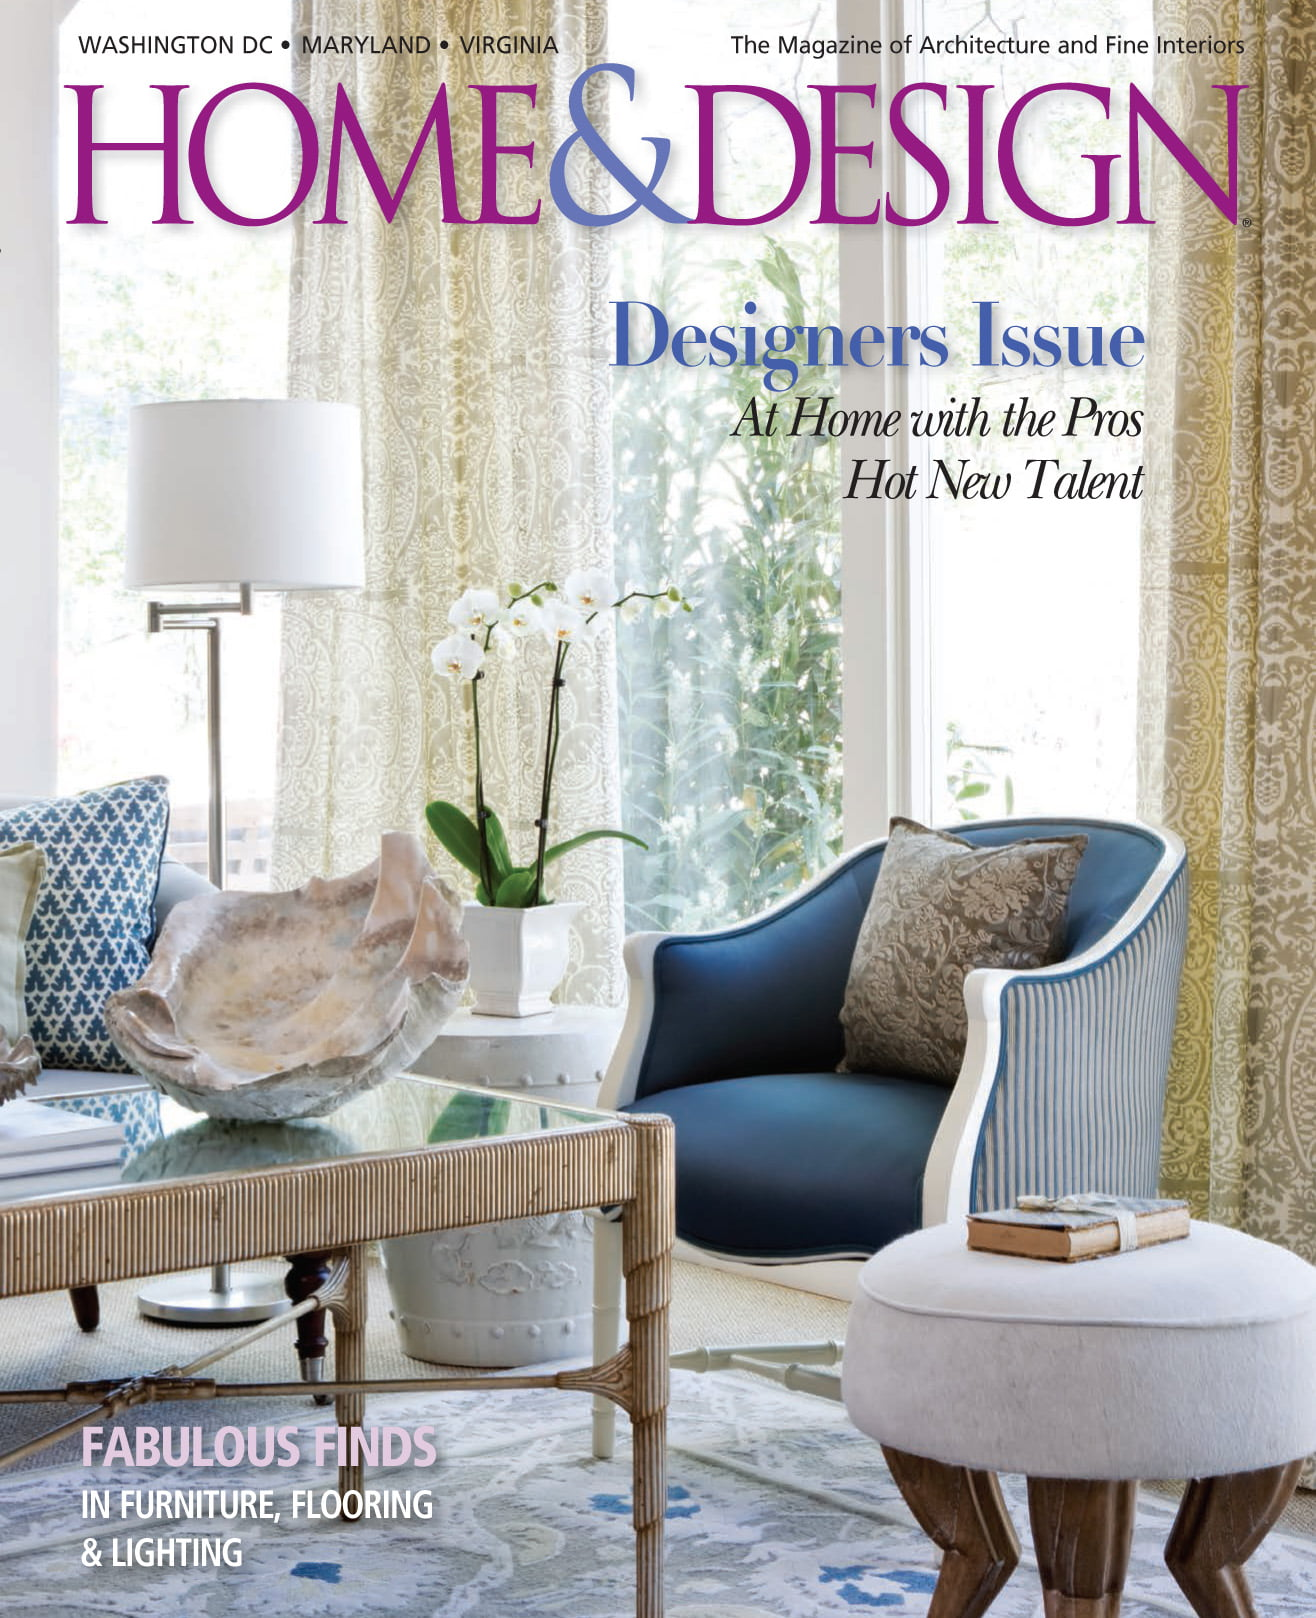 July/August 2012 Archives - Home & Design Magazine